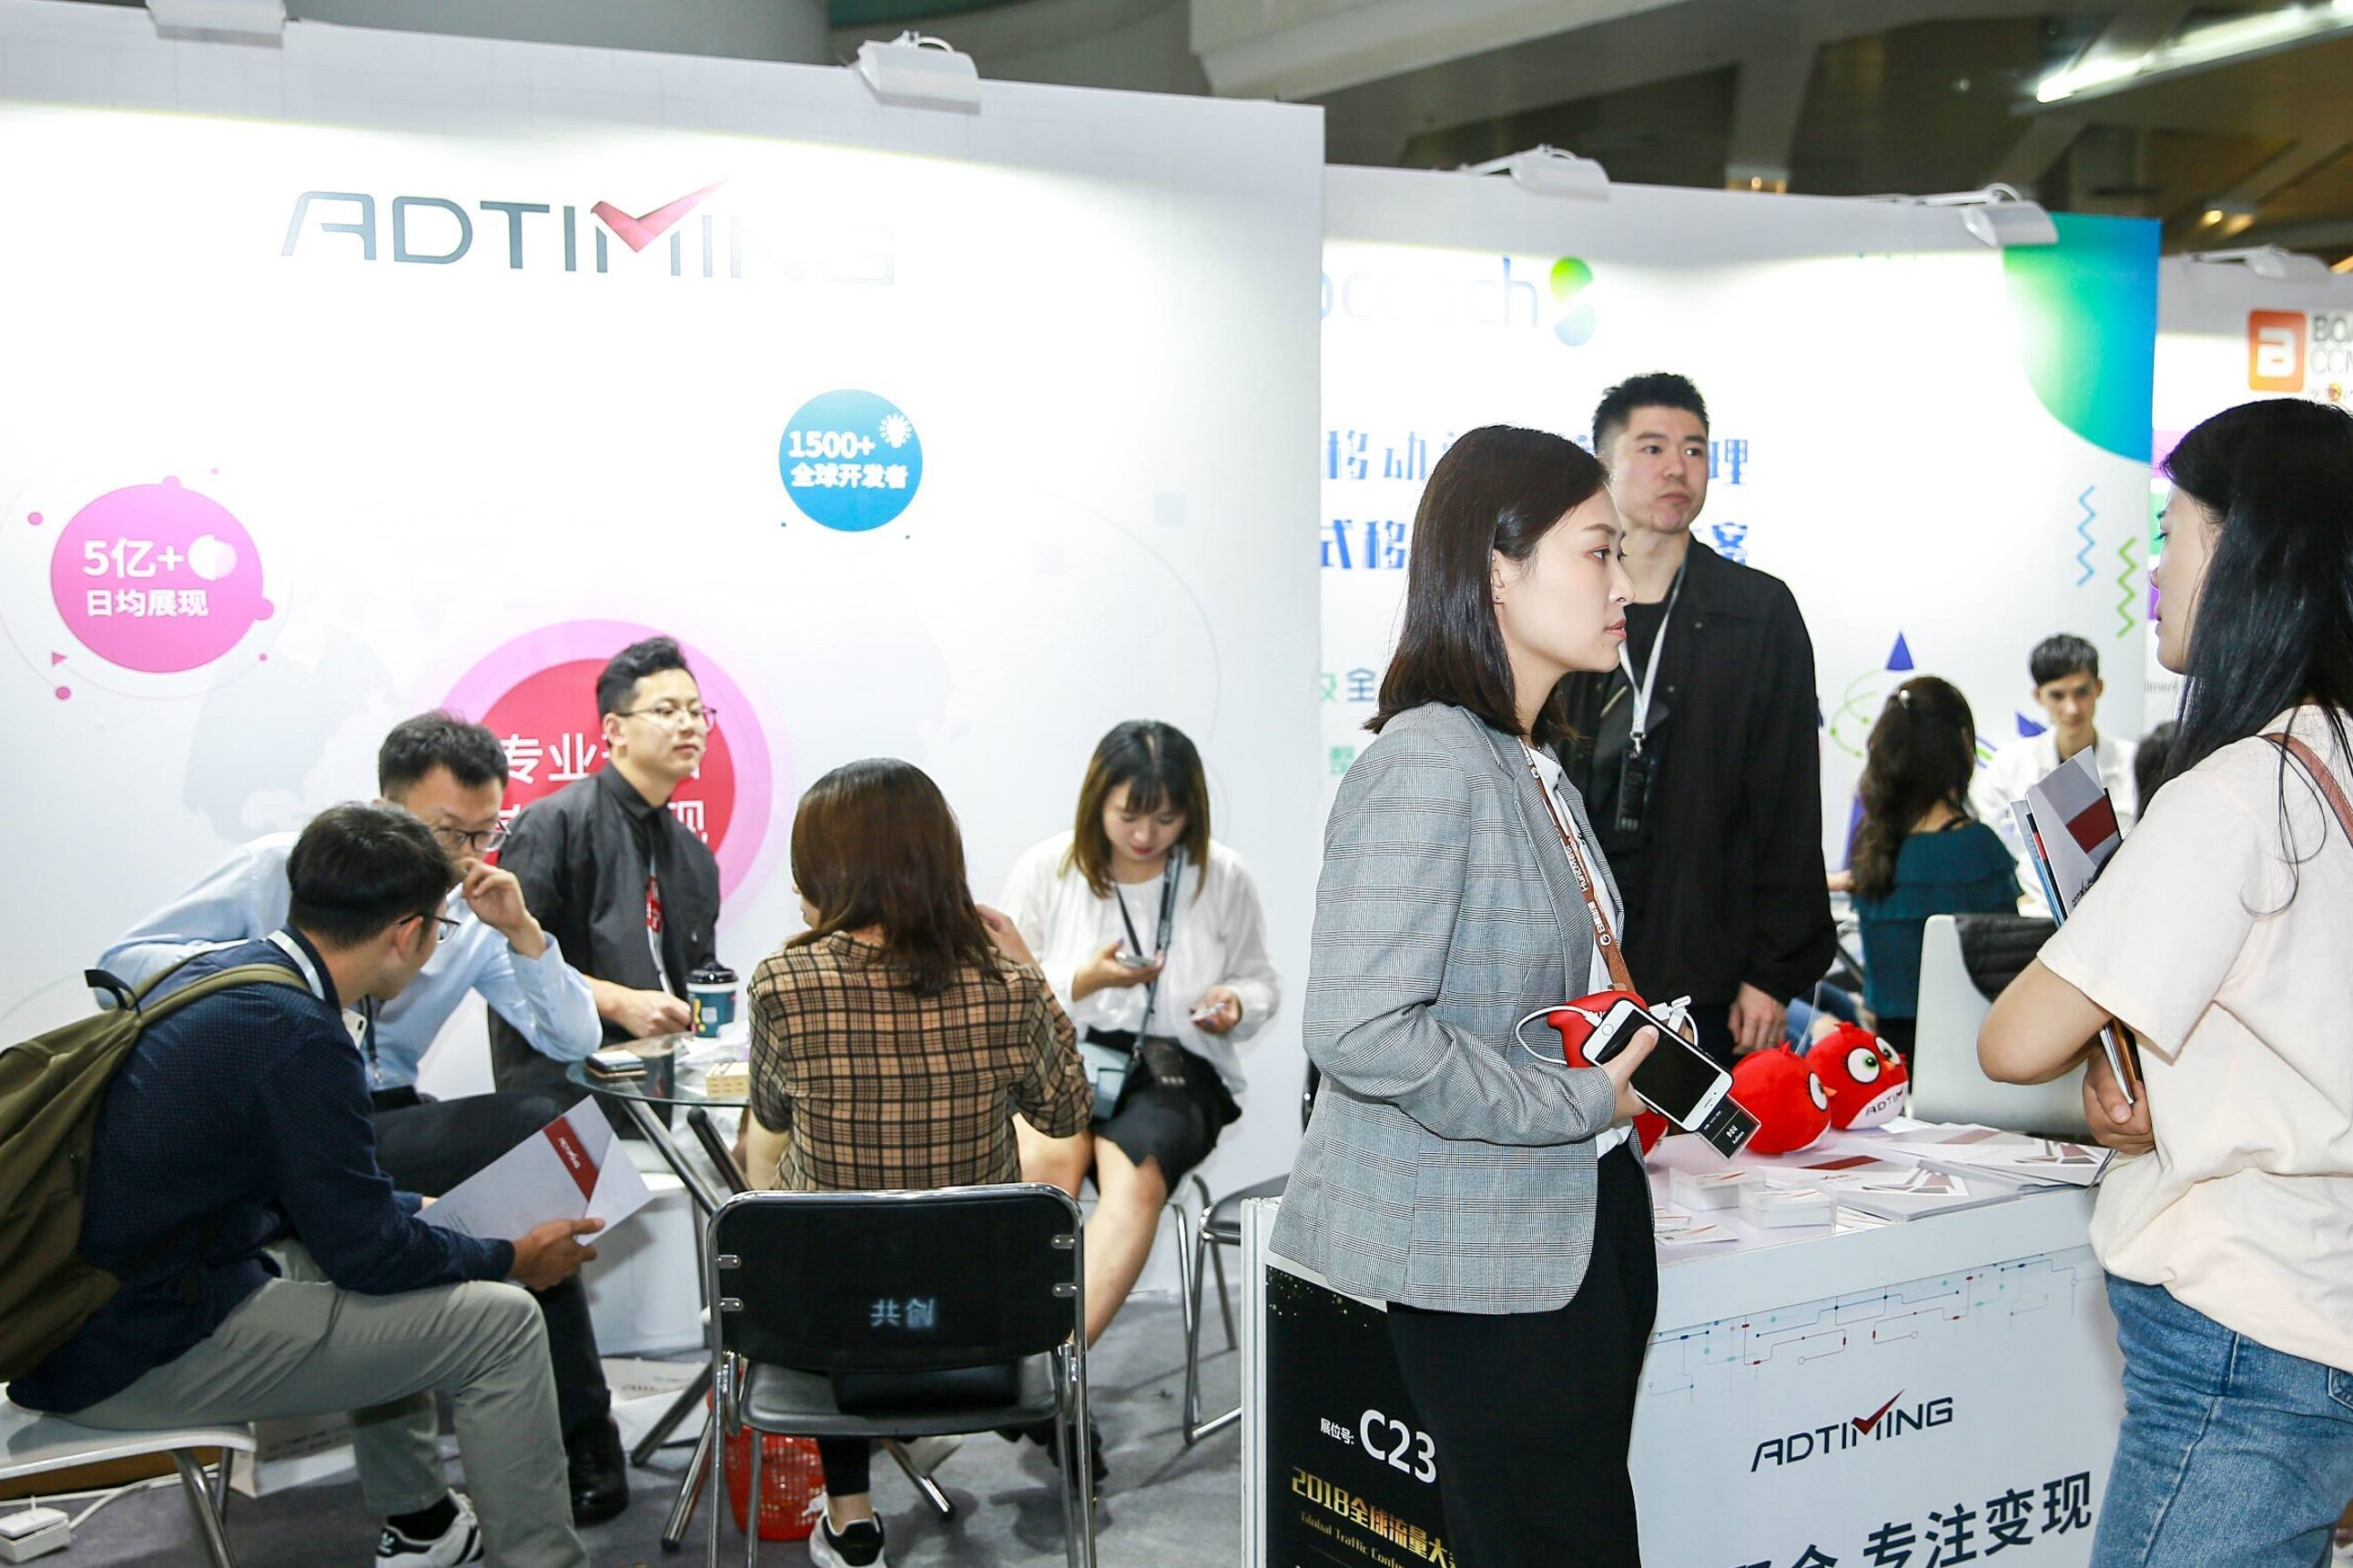 Visitors at the AdTiming Global Traffic Conference Booth